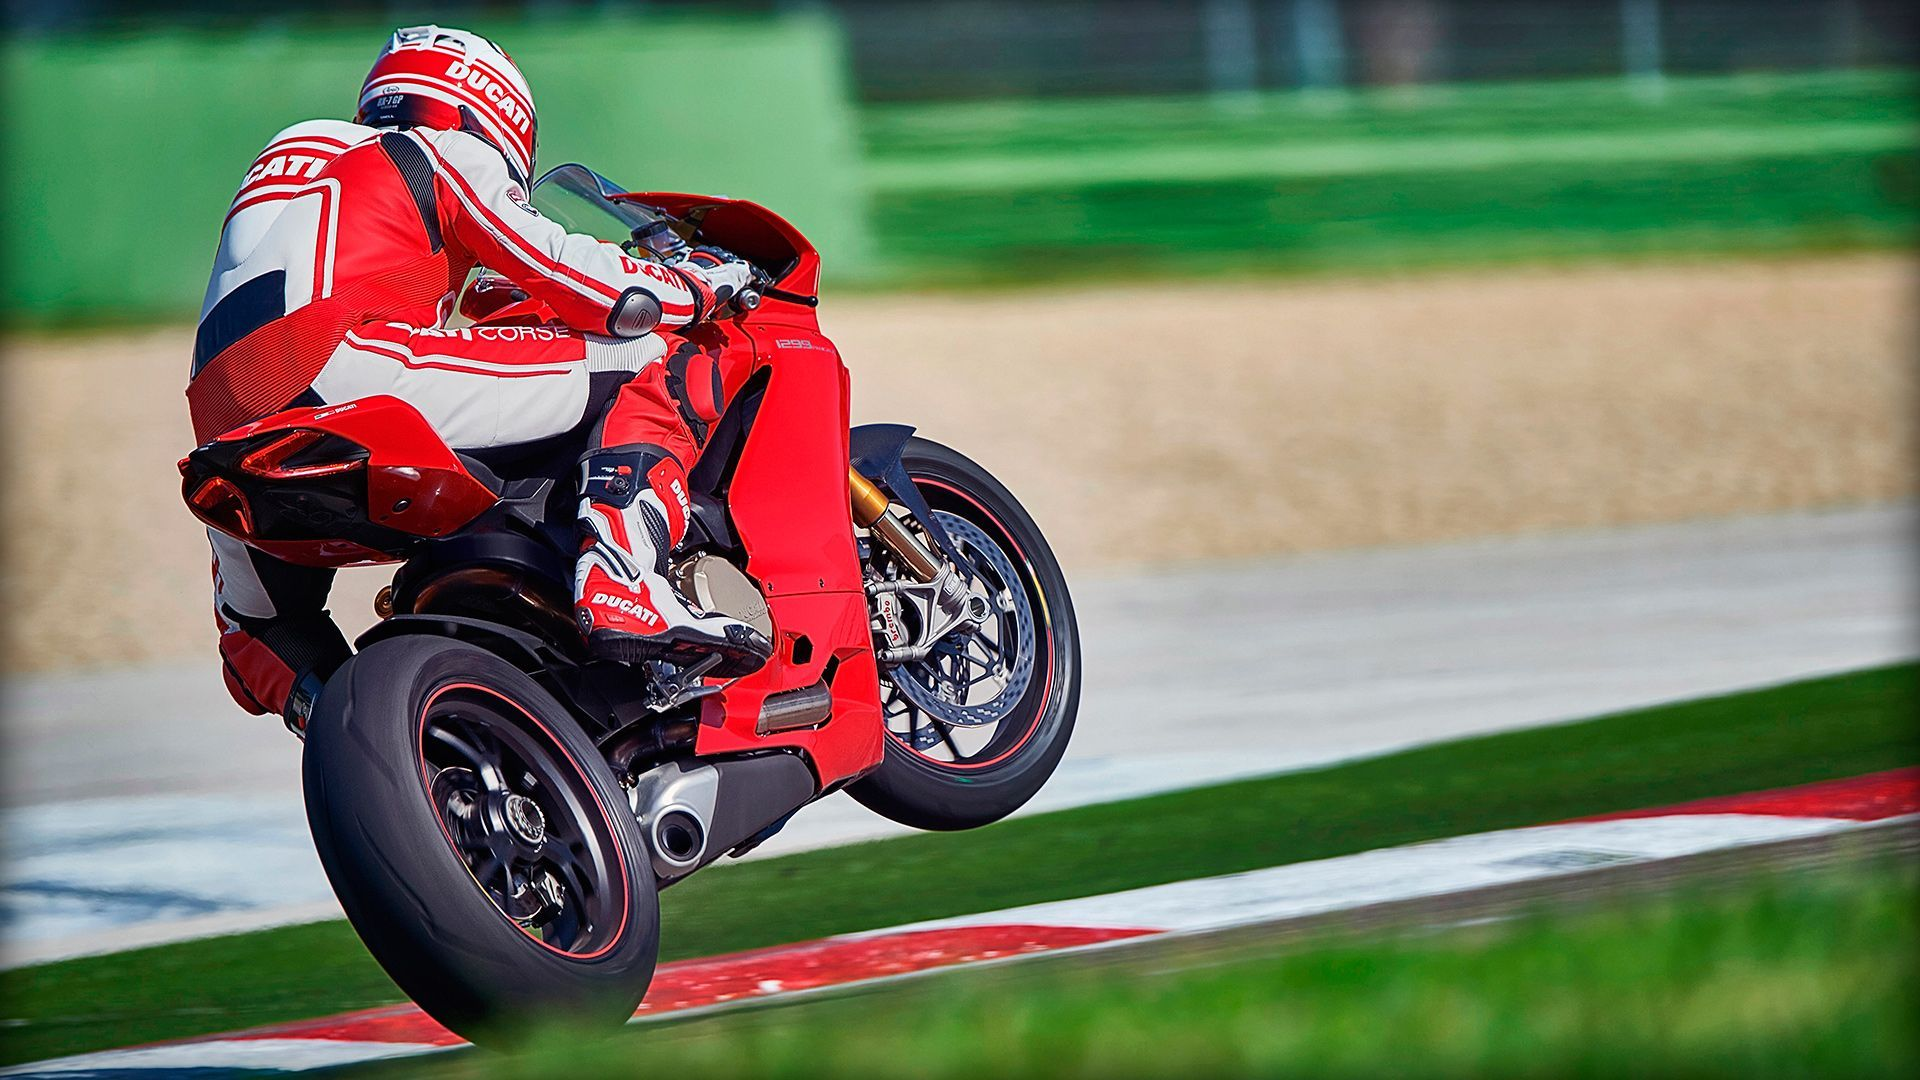 2015 Ducati 1299 Panigale S | 1299 Panigale S - Rear Shot